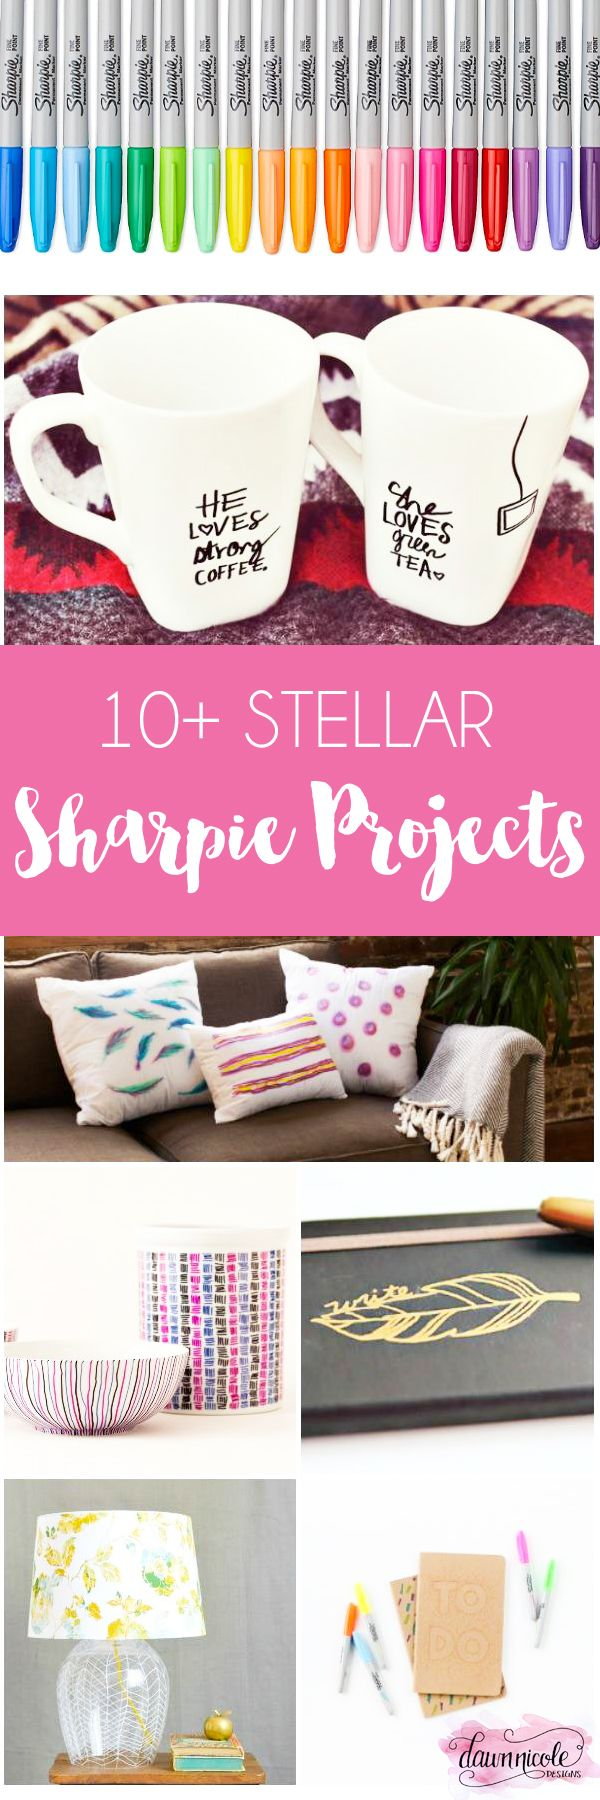 10+ Stellar Sharpie Projects